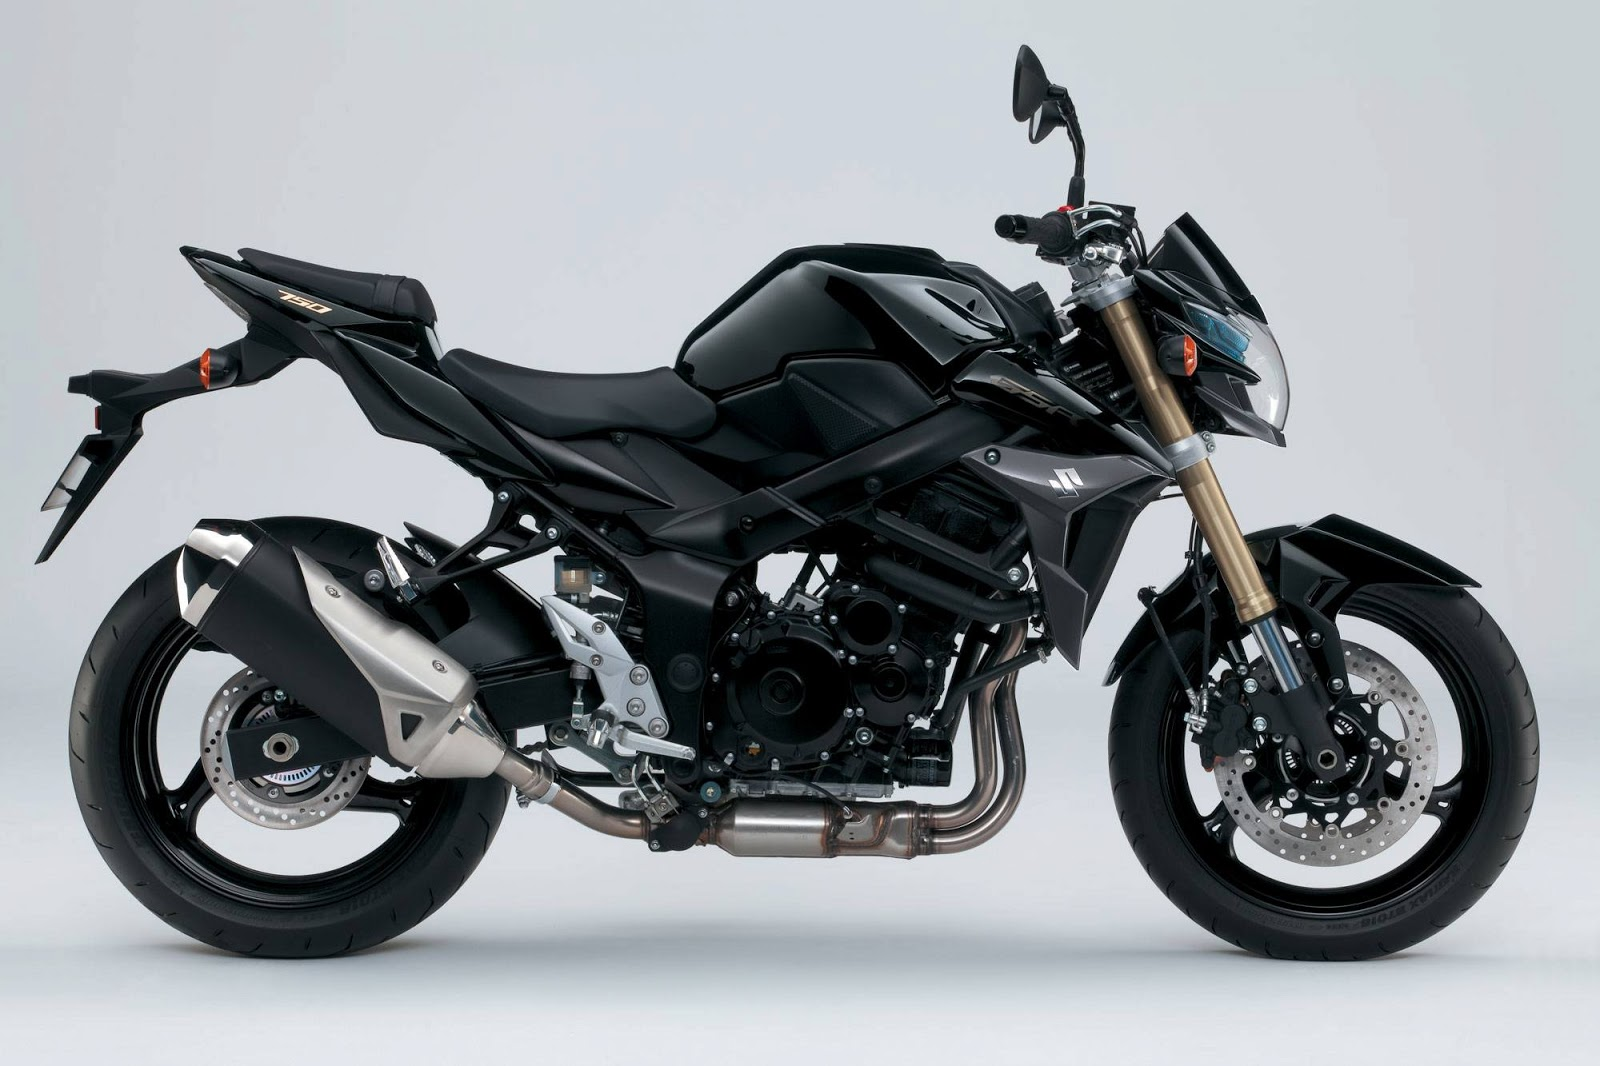 Suzuki motorcycle india pvt ltd plans to launch the inazuma 250 also known as the gw250 in the coming months in india the gw250 is a naked street bike